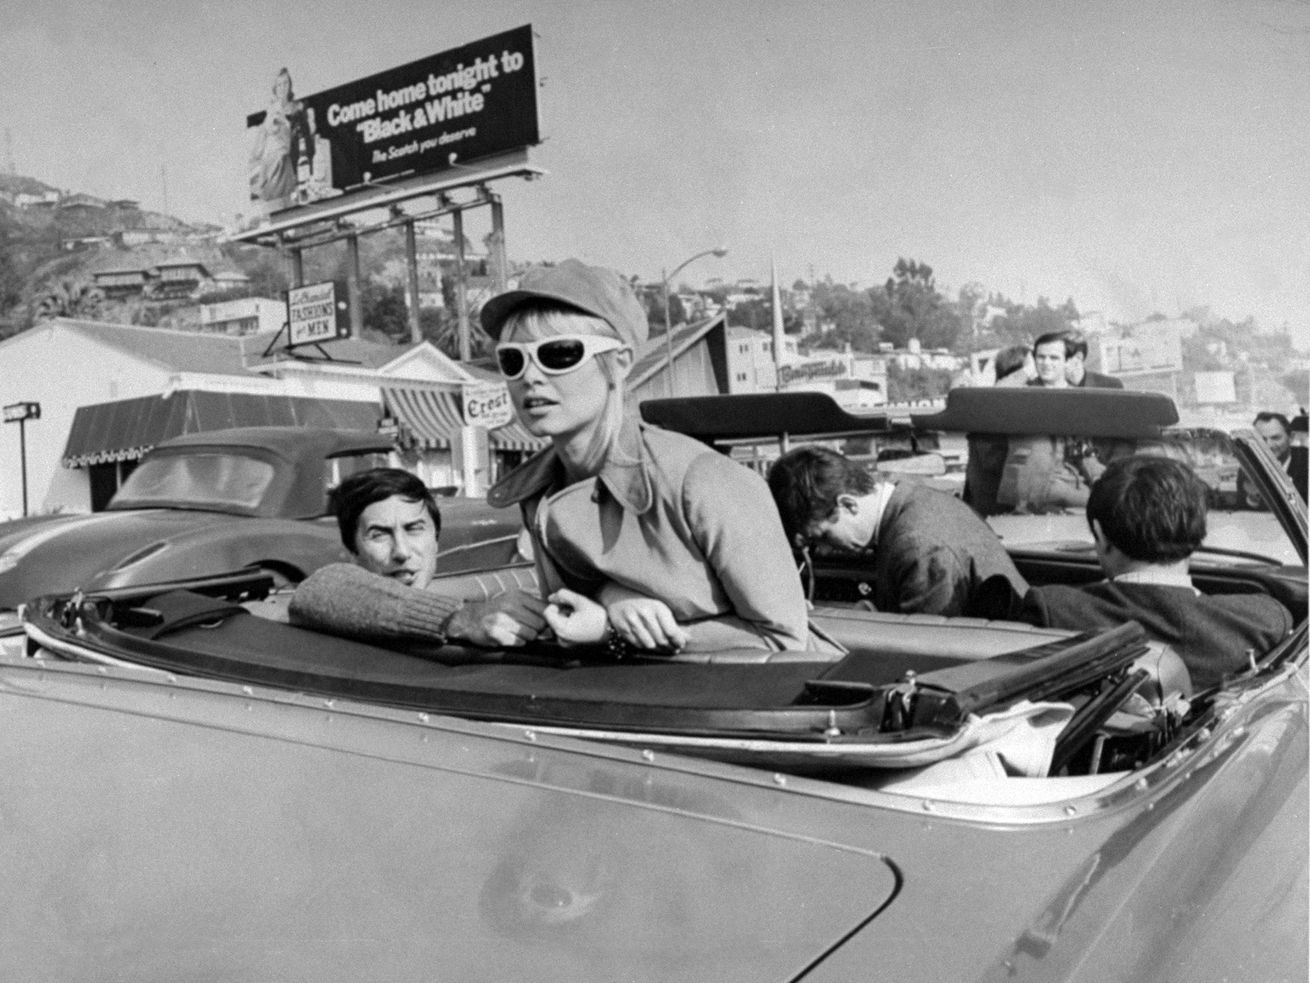 In the 1960s, Sunset Strip became a mecca for car cruising culture so loved by American teens.